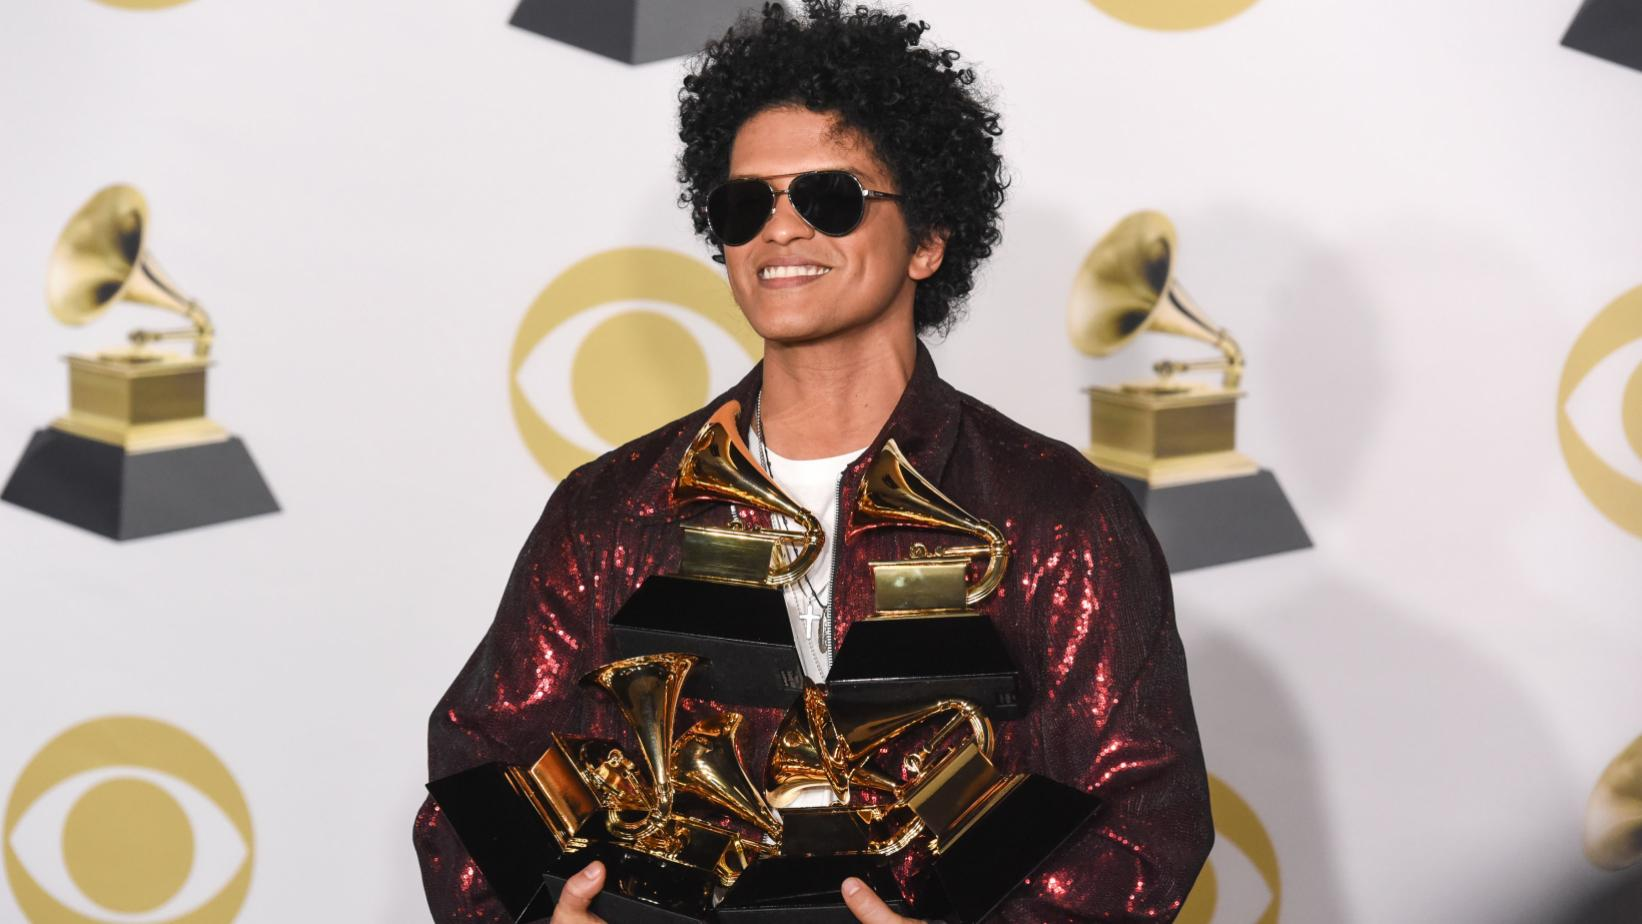 Bruno Mars at the 60th GRAMMY Awards, 2018